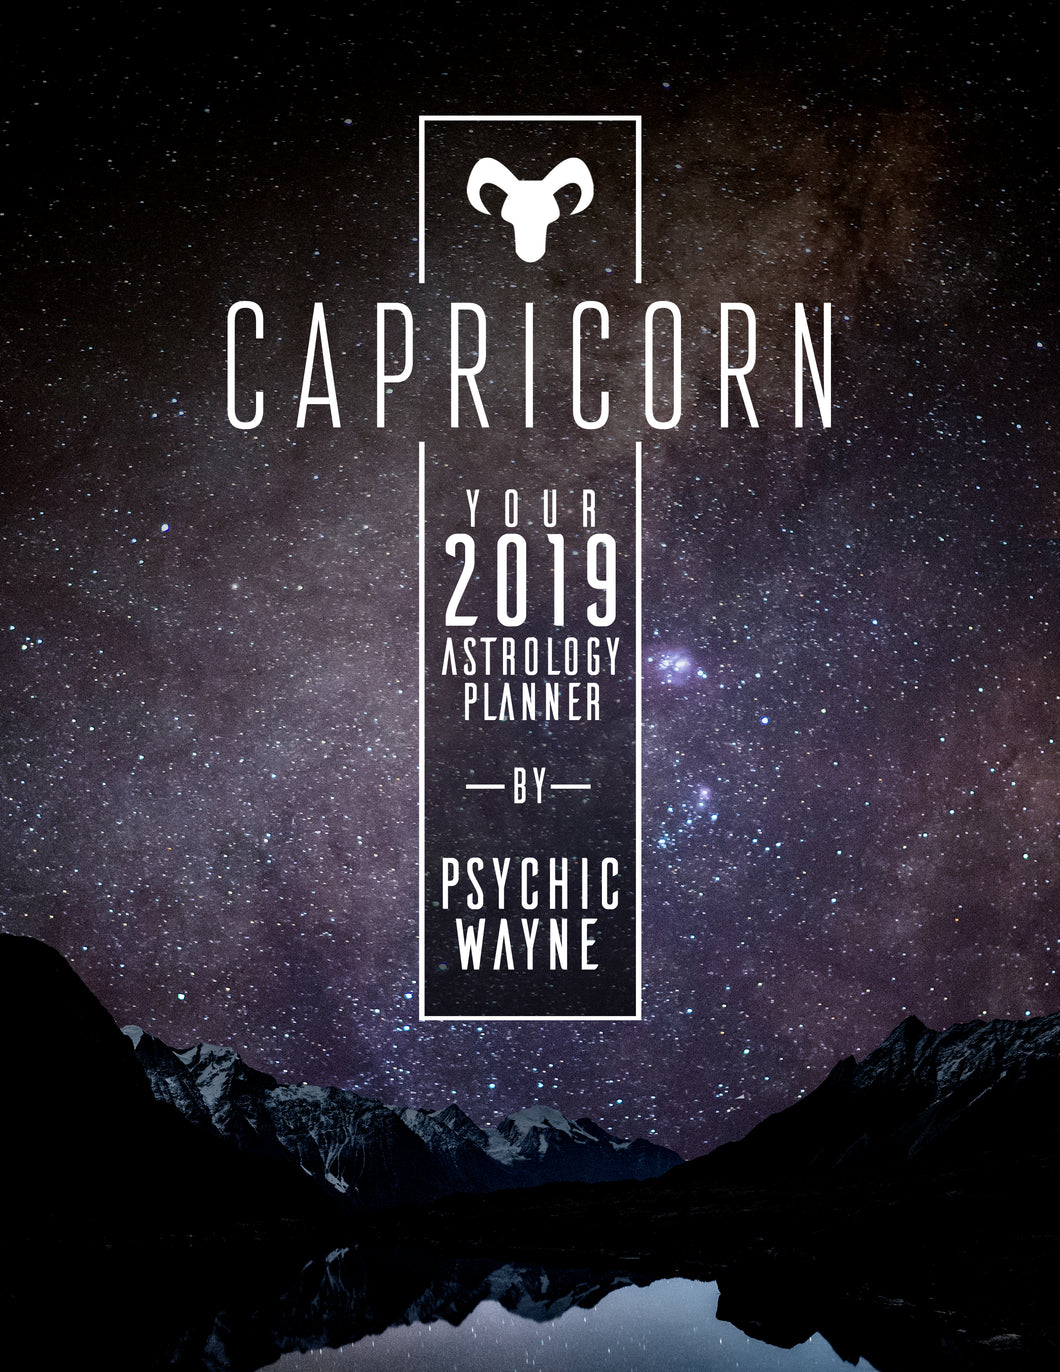 Capricorn 2019 Astrology Planner